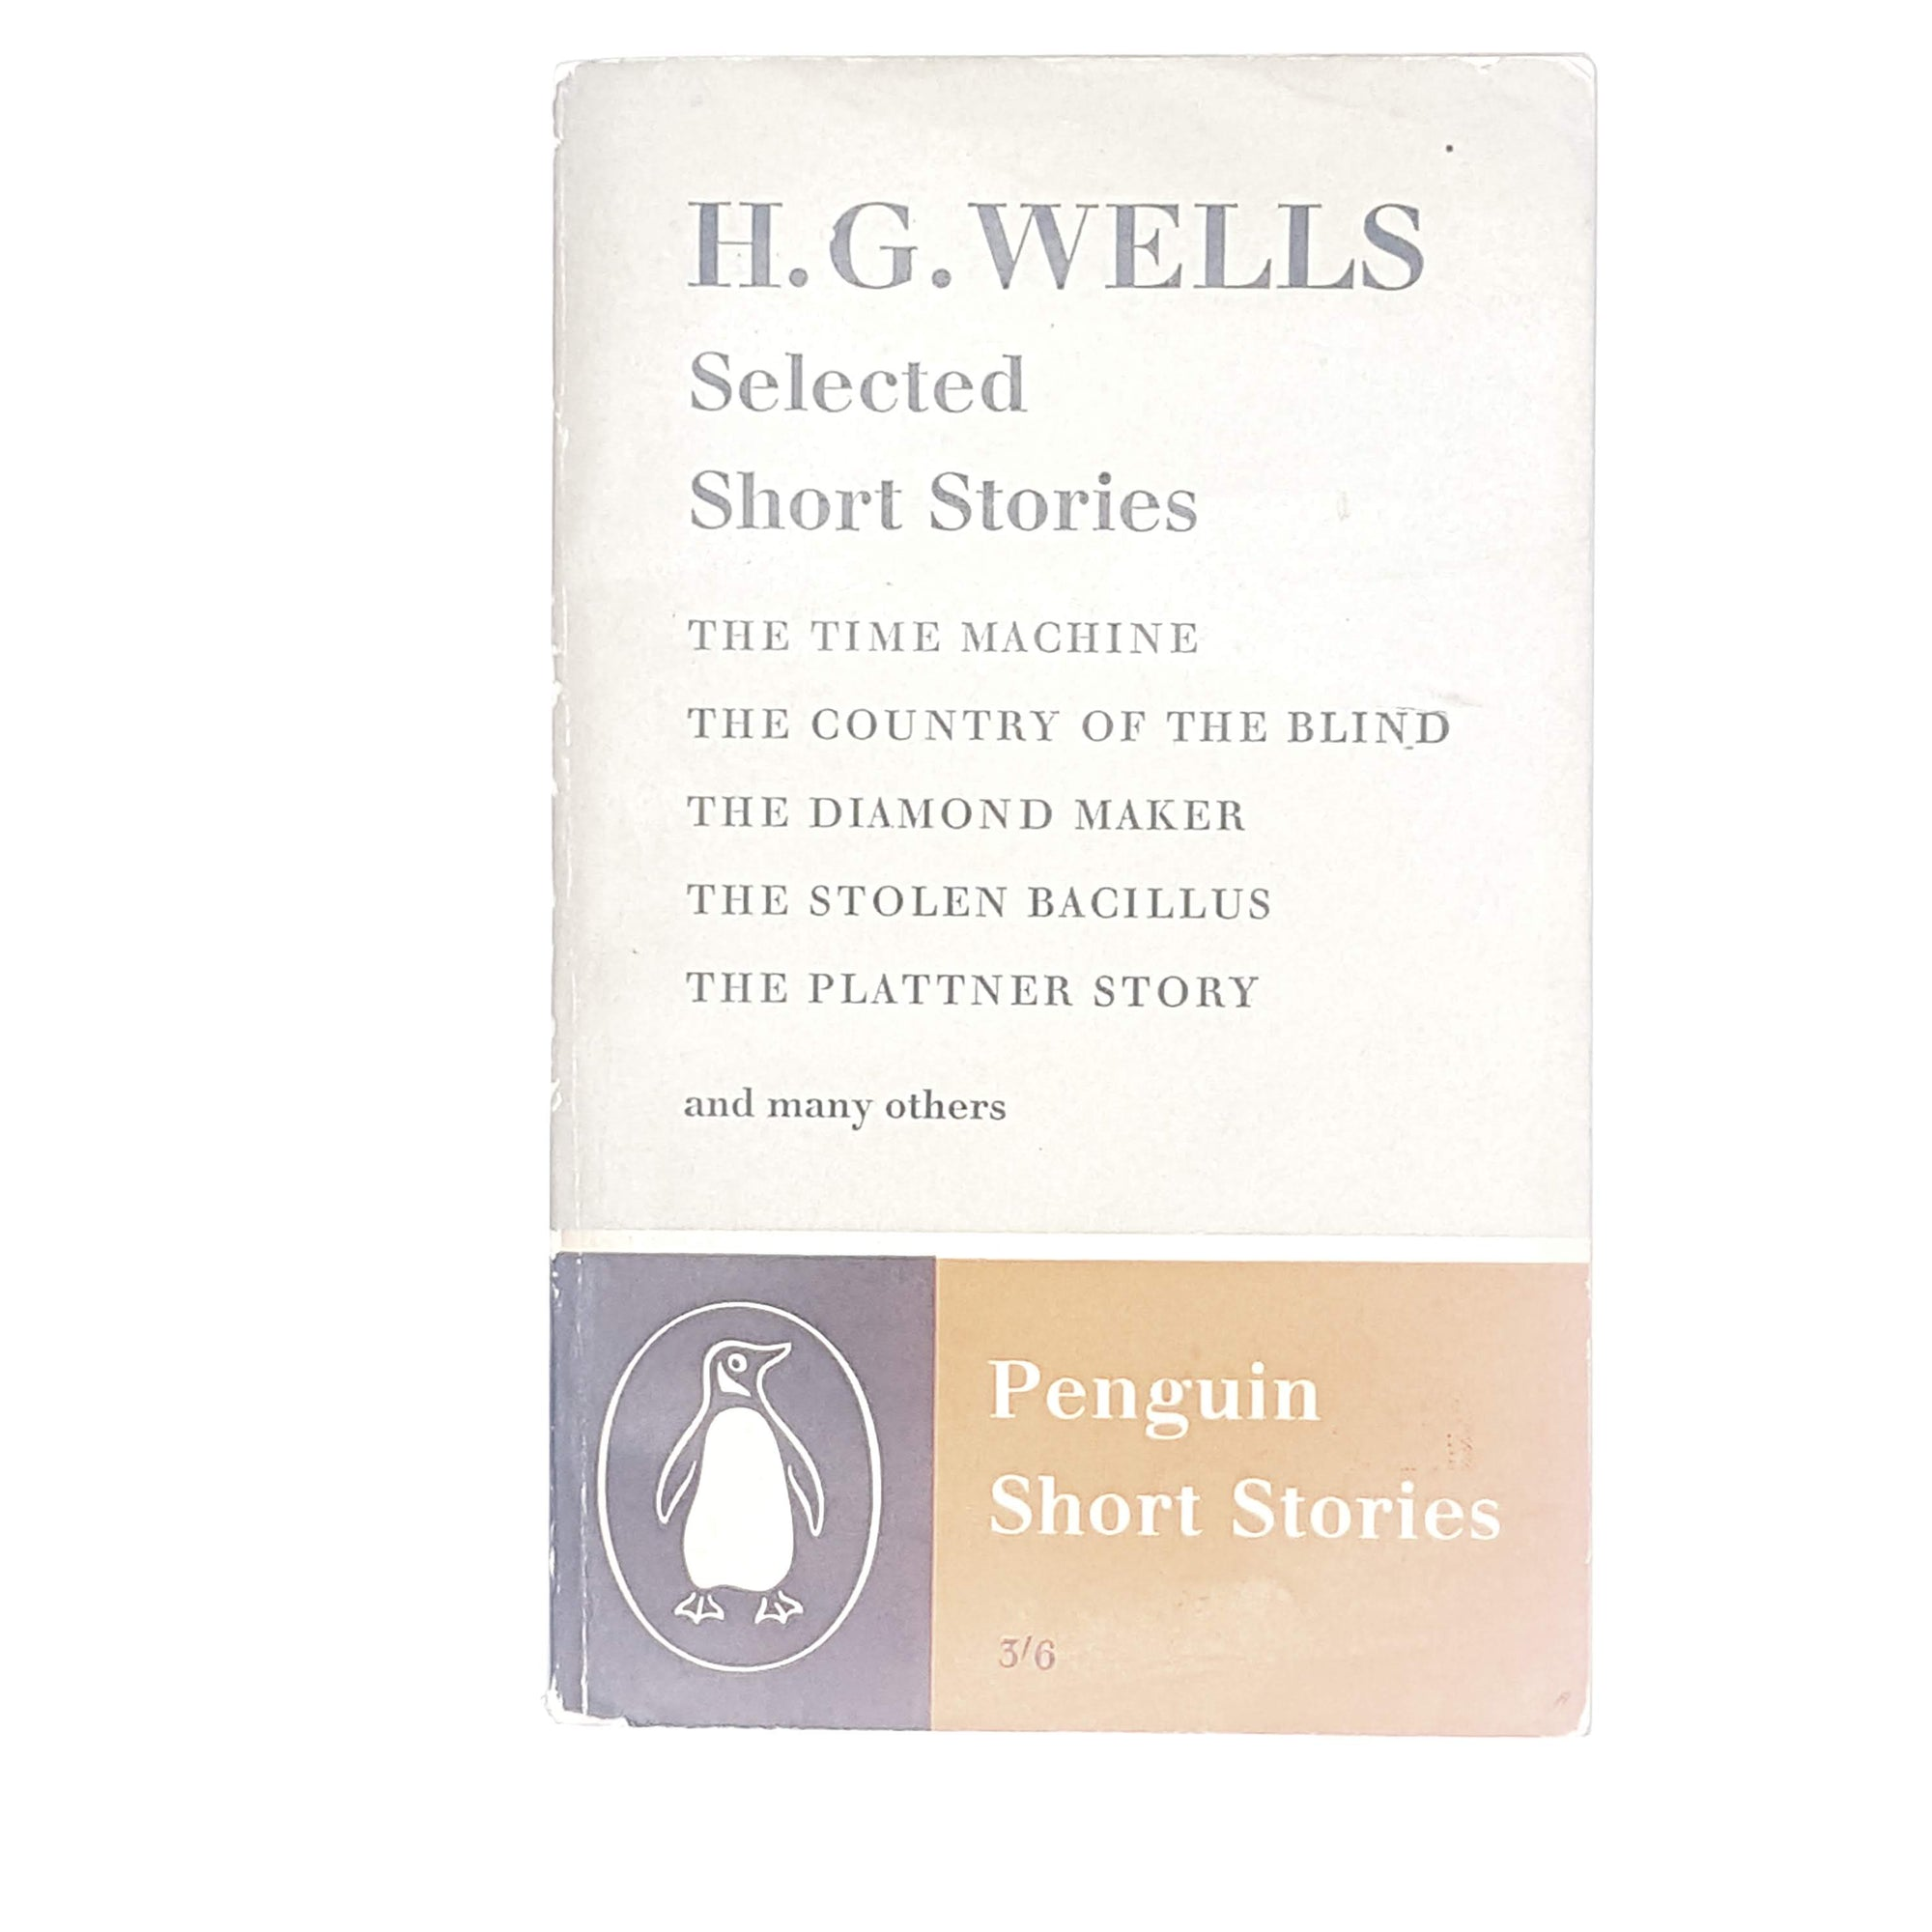 H. G. Wells: Selected Short Stories 1960